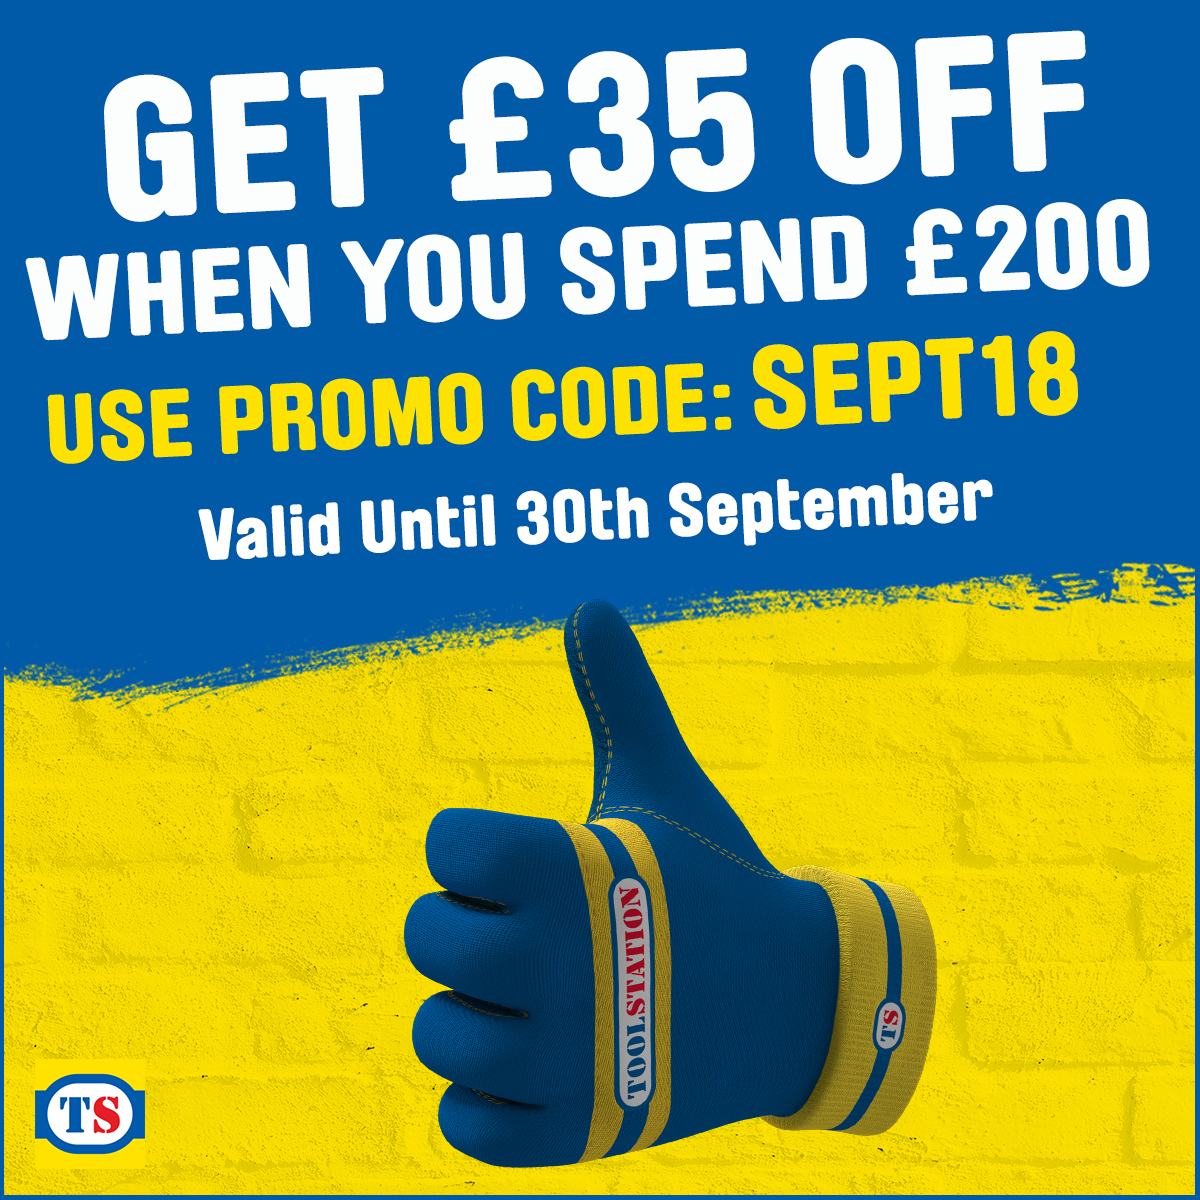 Promo Terms & Conditions - £35 Off £200